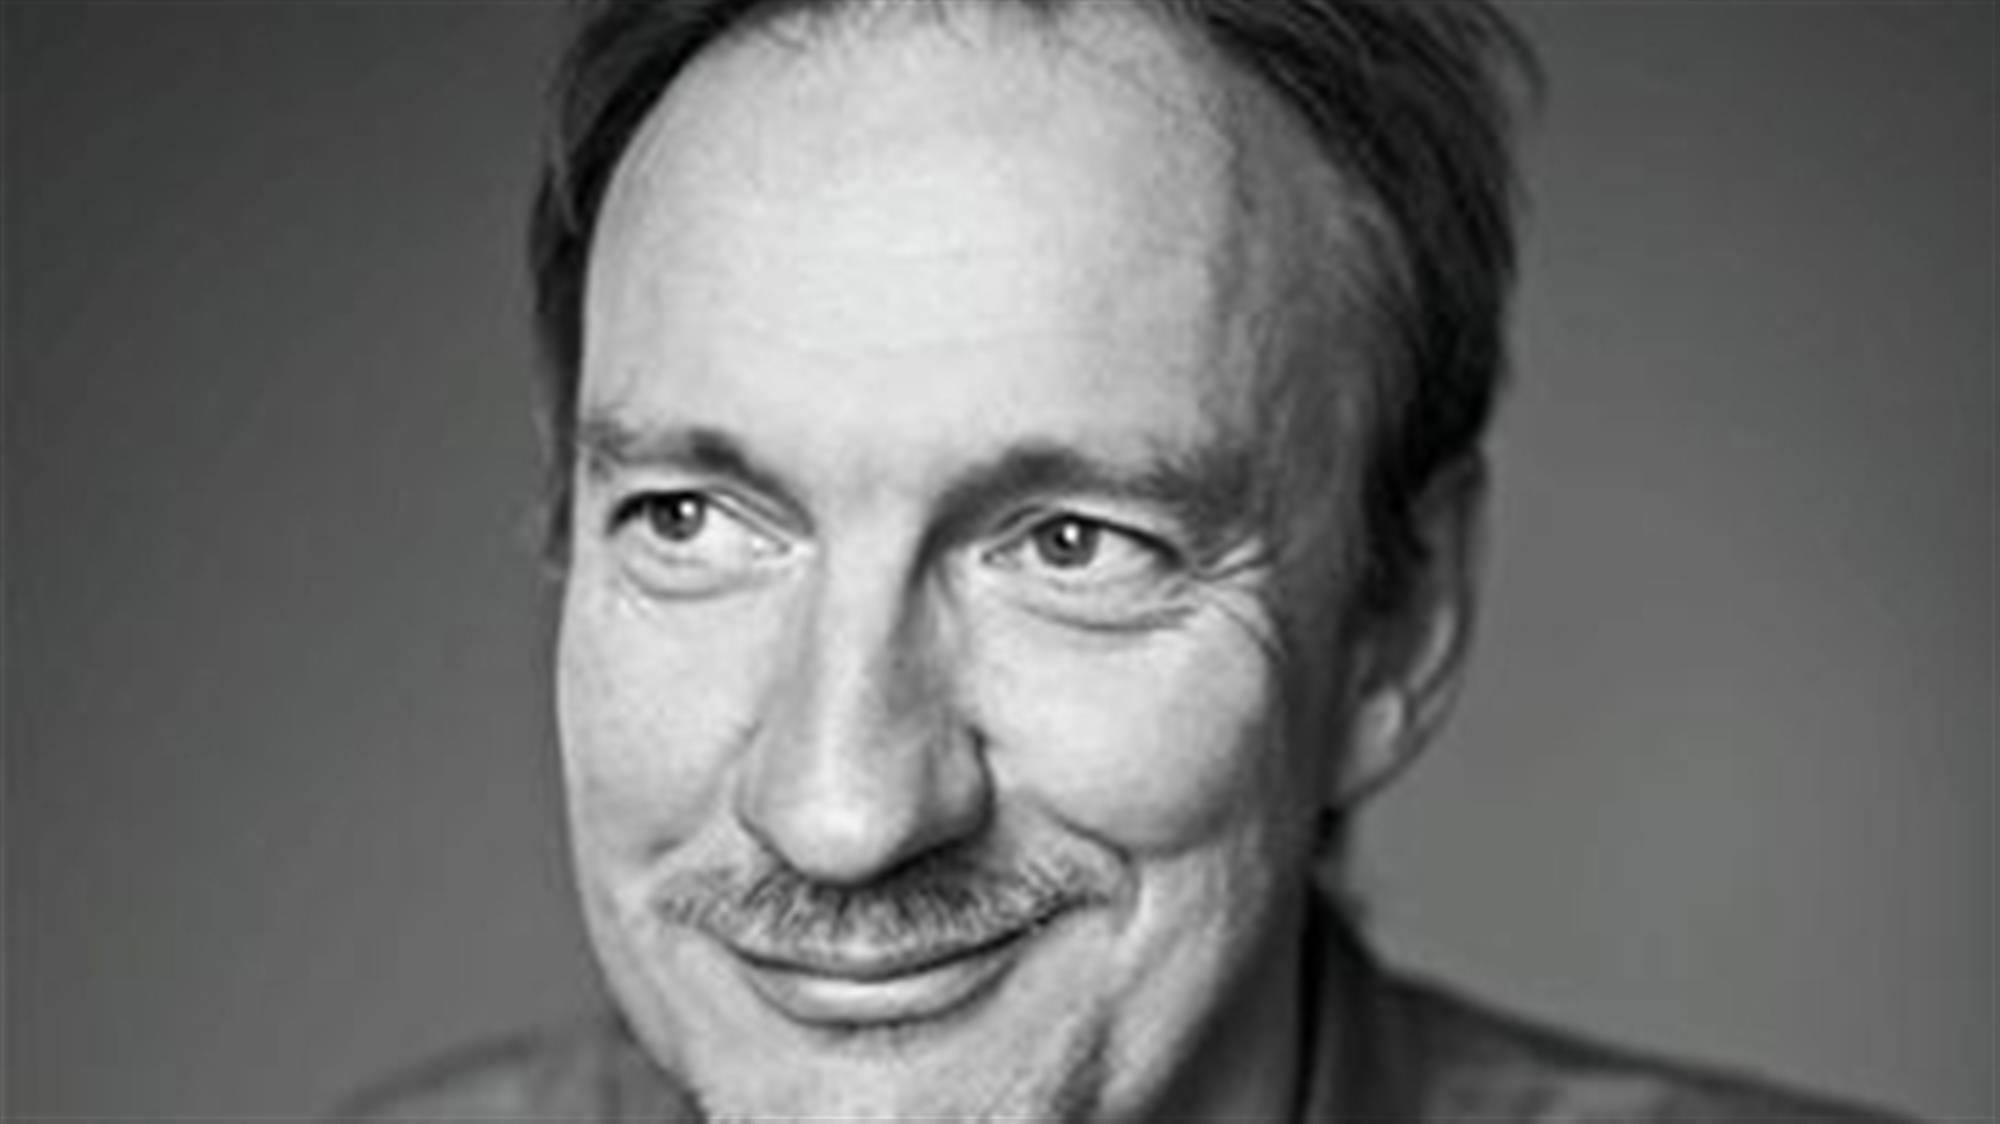 David Thewlis in Barkskins